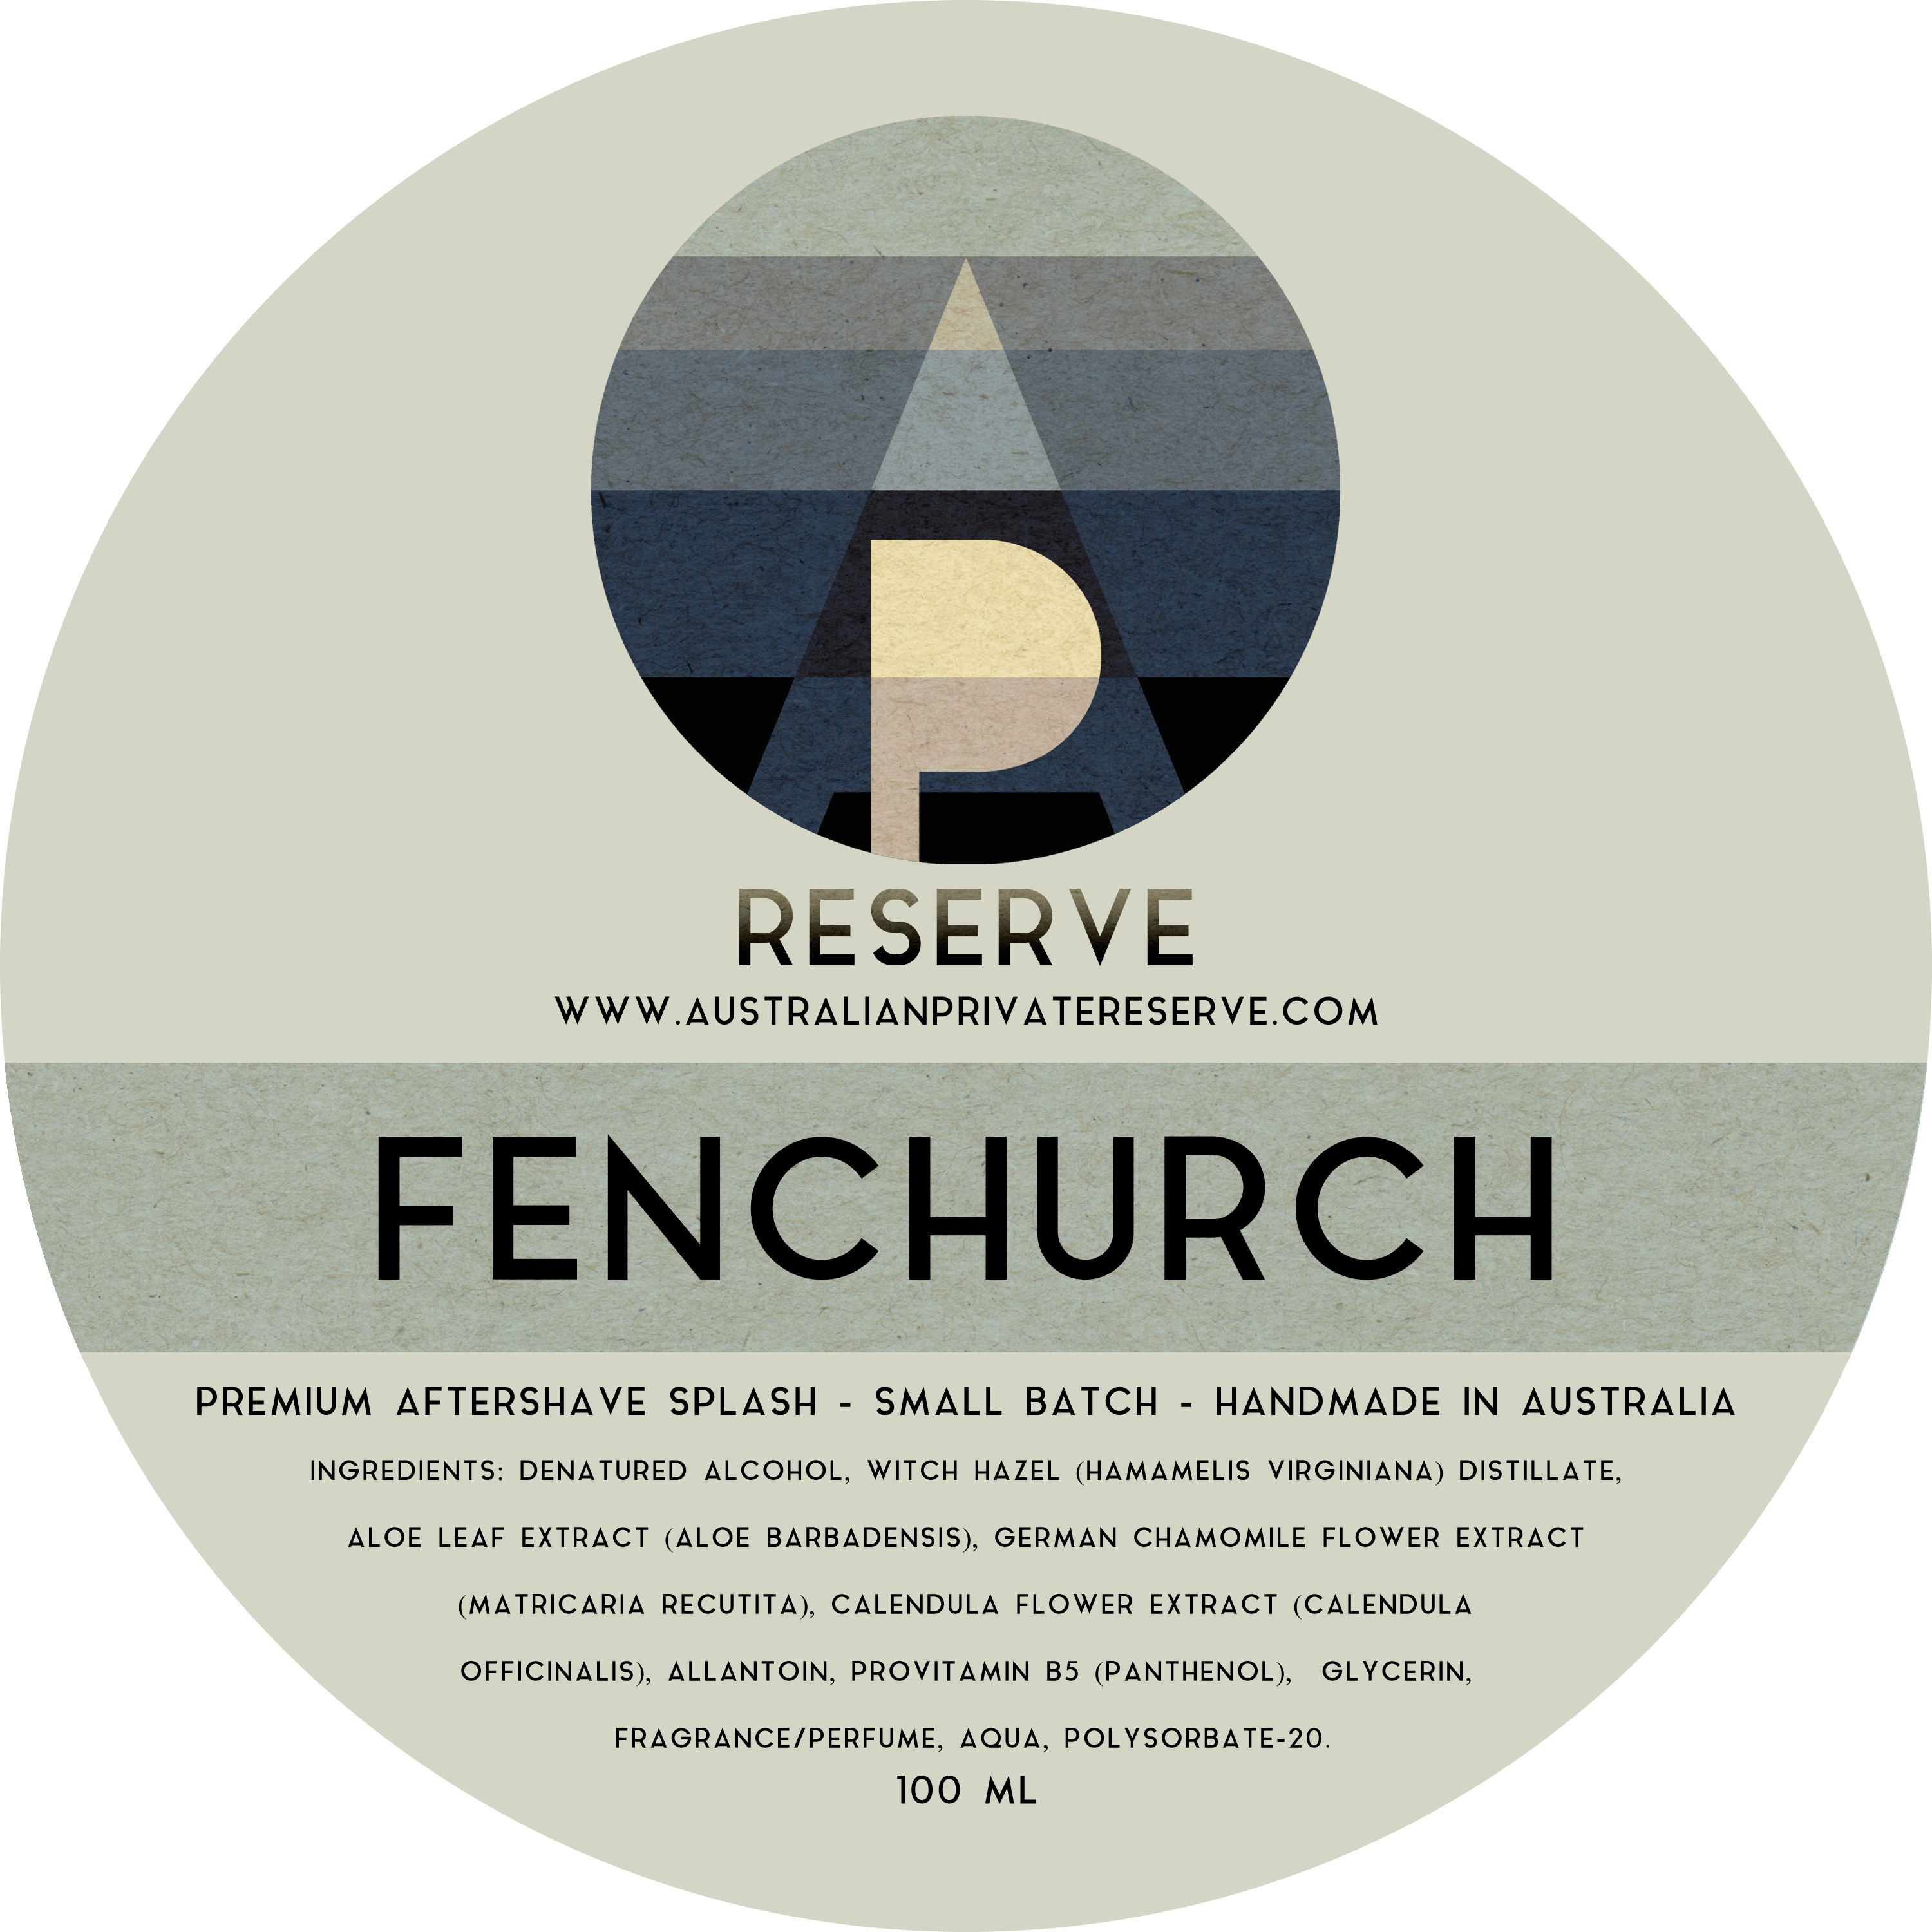 Australian Private Reserve - Fenchurch - Aftershave image